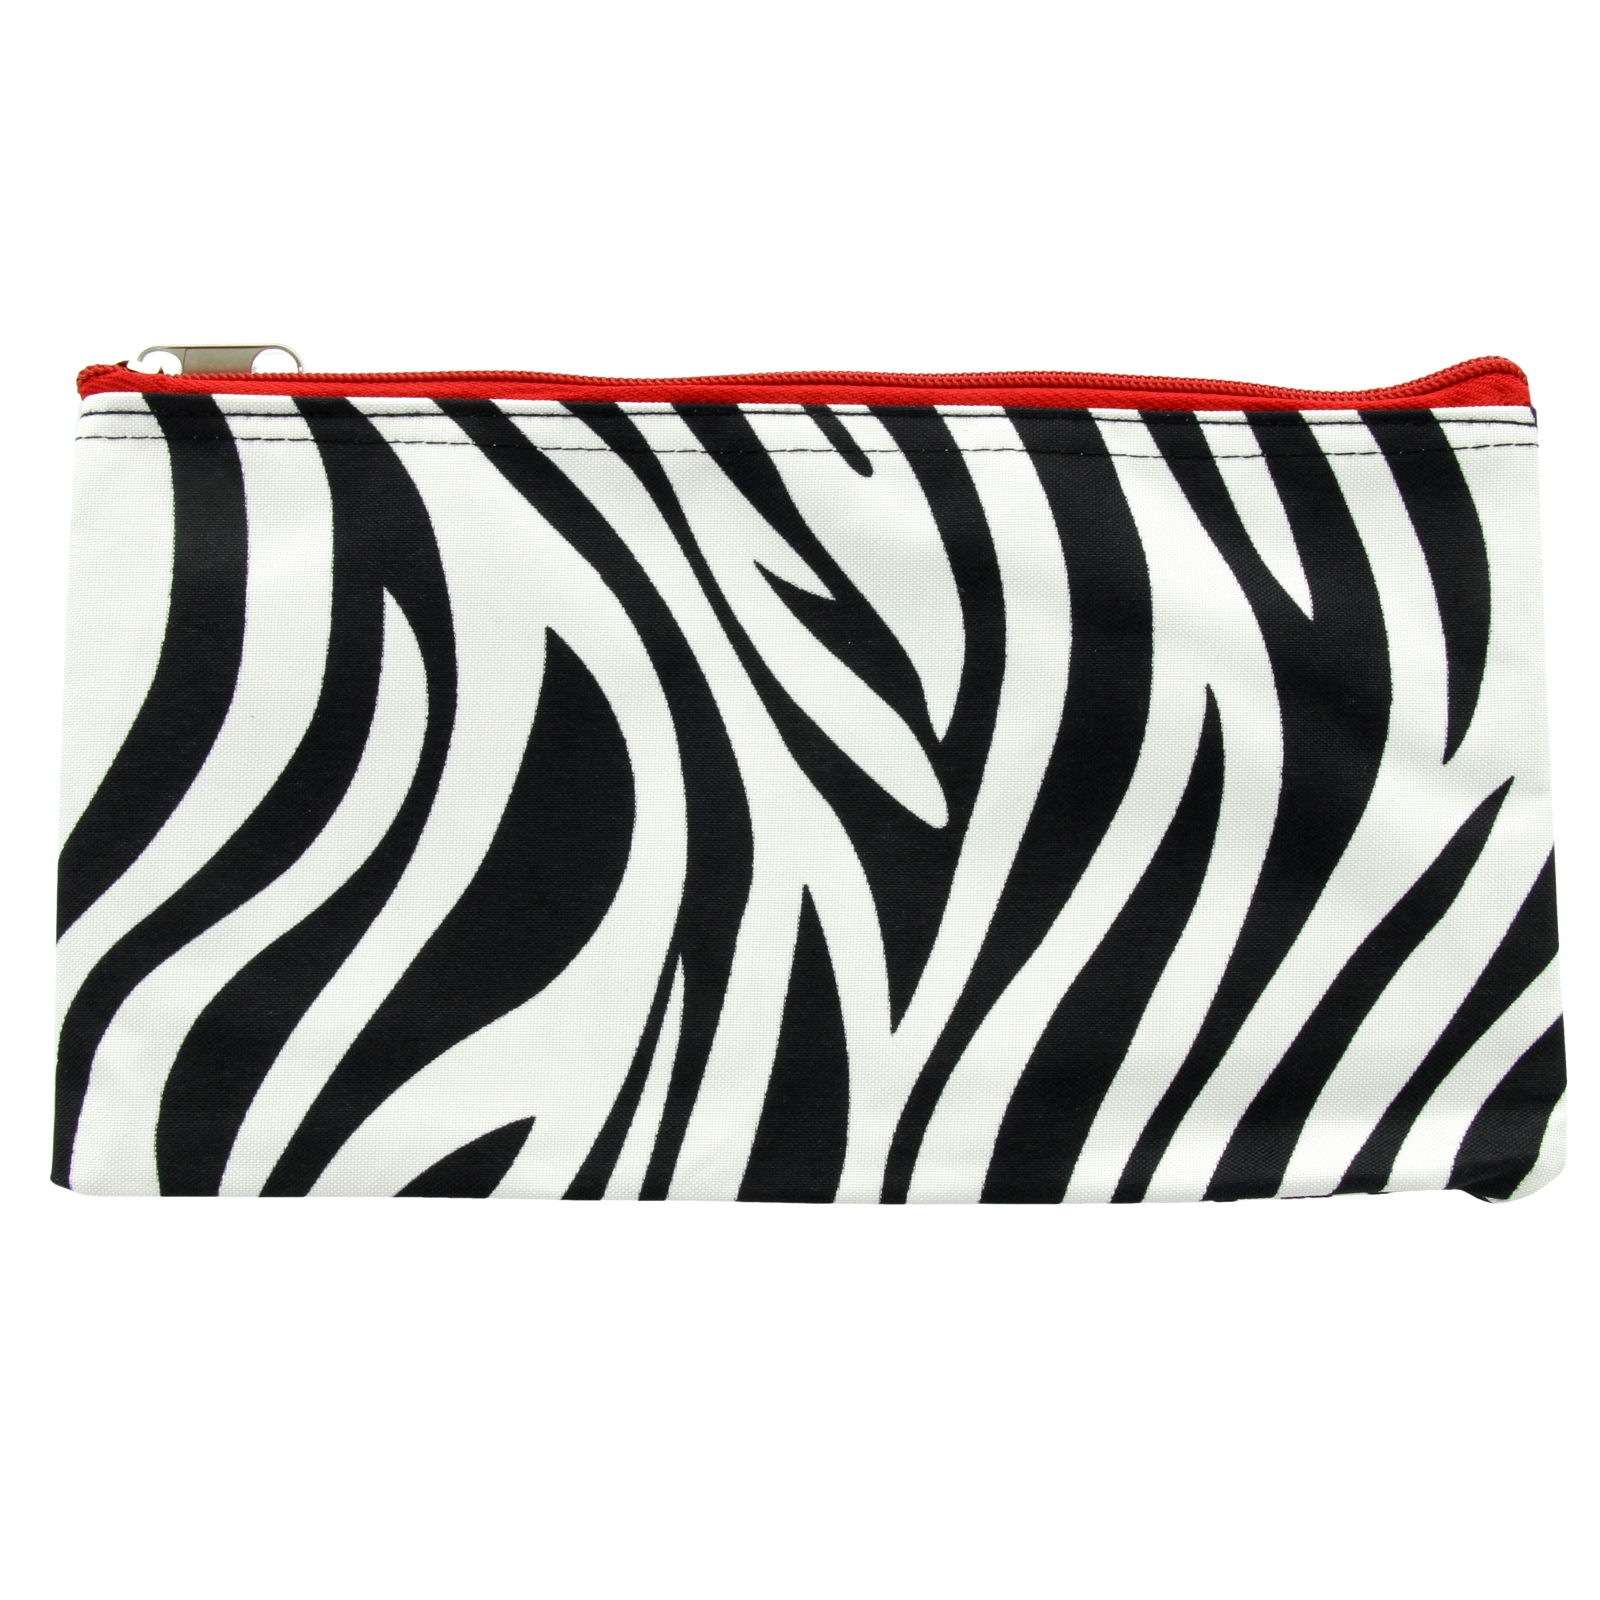 "11"" Zebra Print Zip Cosmetic Travel School Makeup Brush Bag Pouch w/ Red Trim"